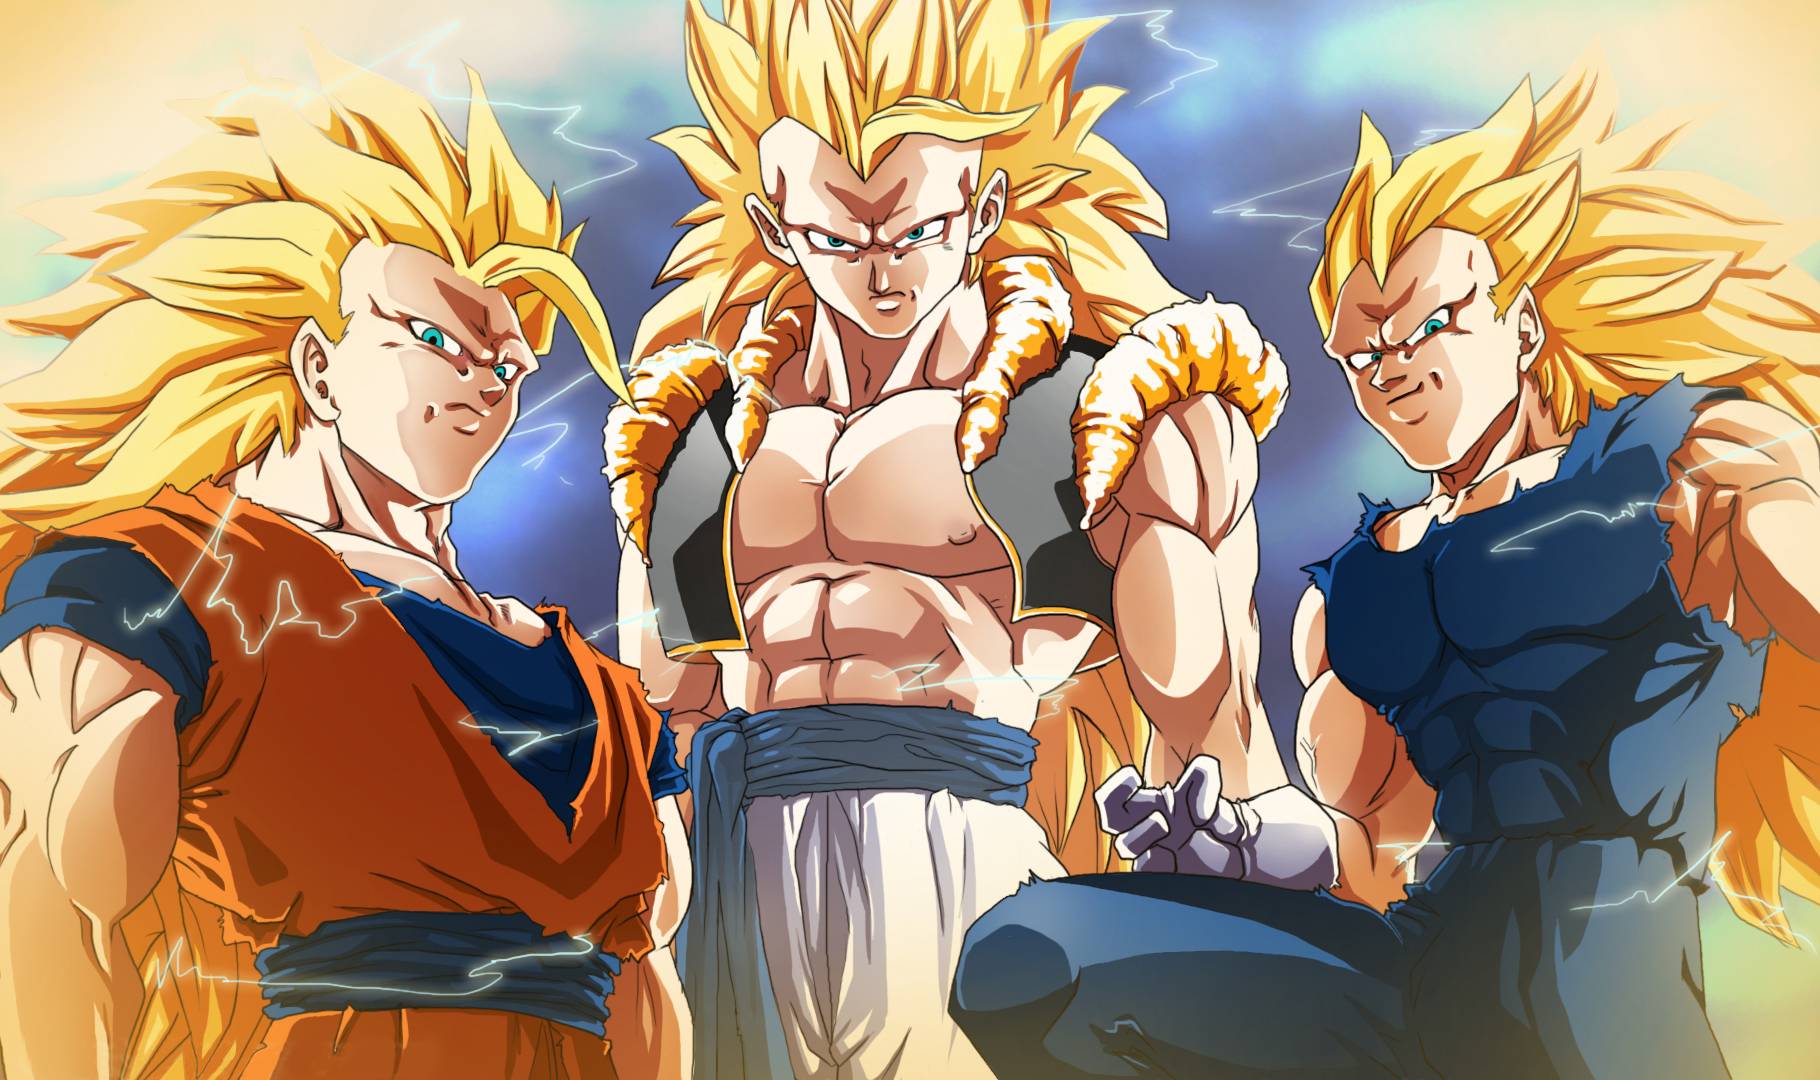 Studio behind Dragon Ball Z fan series going after rights to make